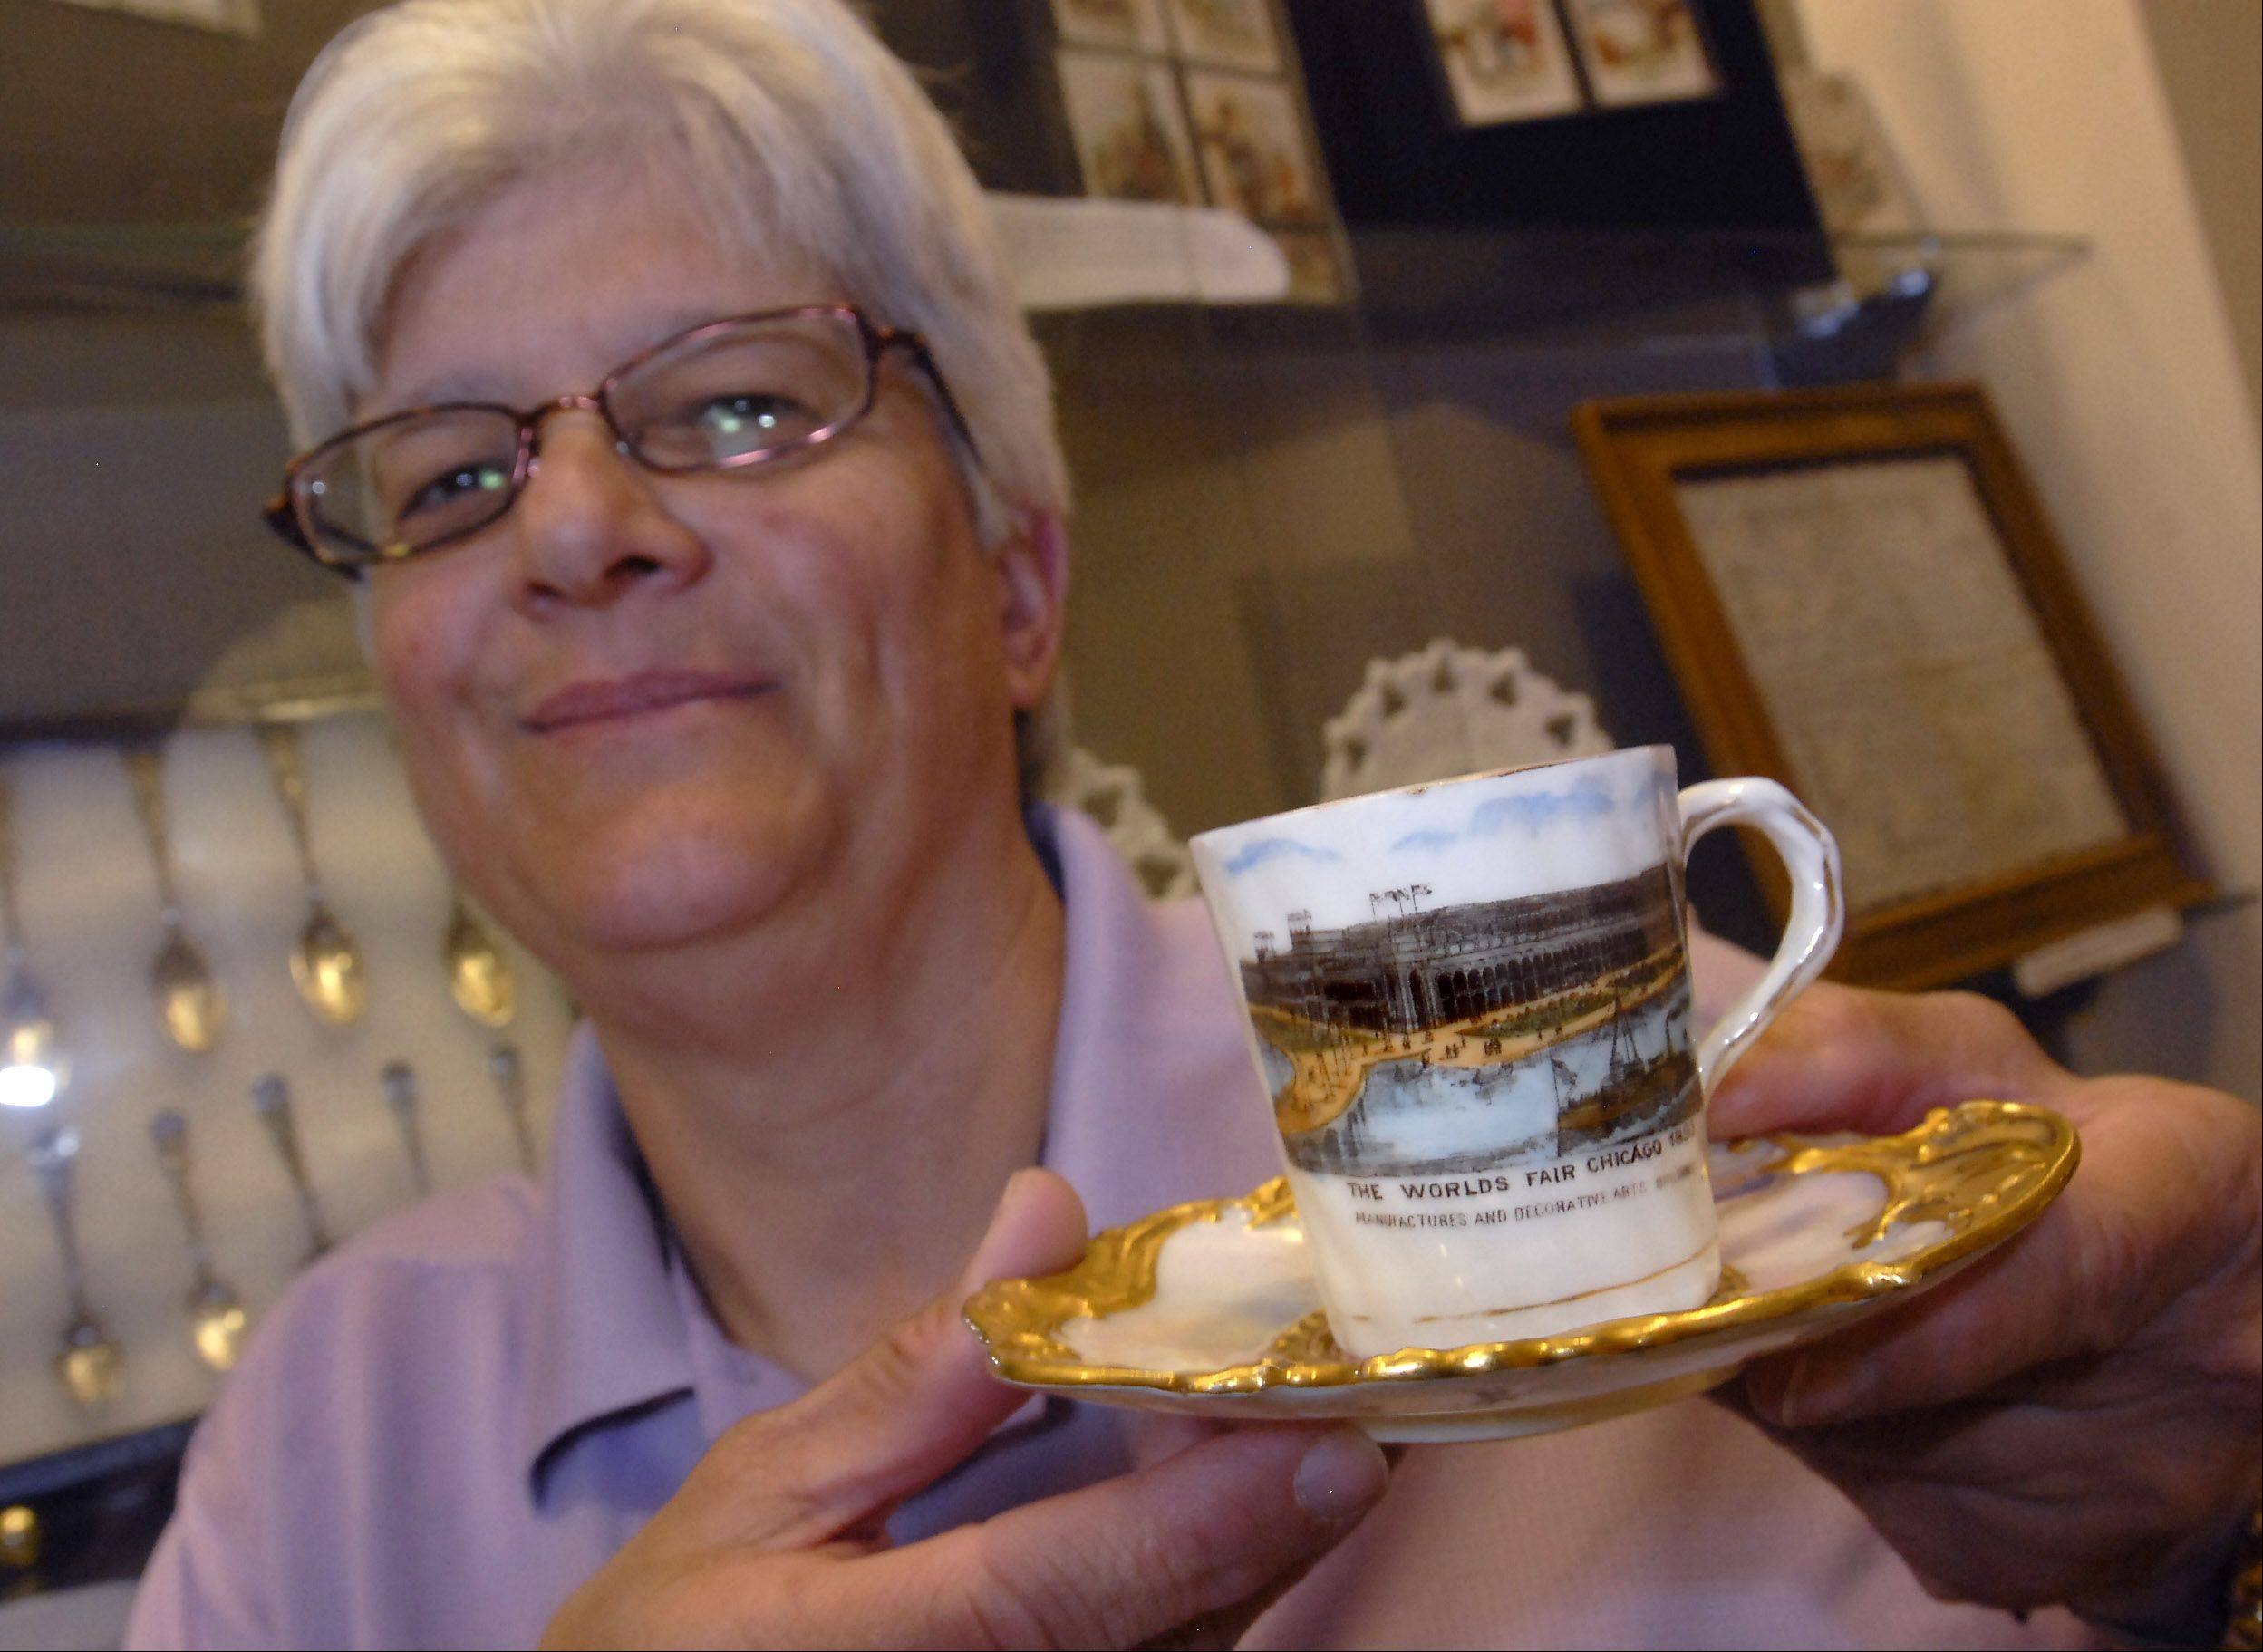 This demitasse cup from Coalport, England was hand painted for the Exposition. Debbie Smart is displaying pieces from her collection at the Arlington Heights village hall.